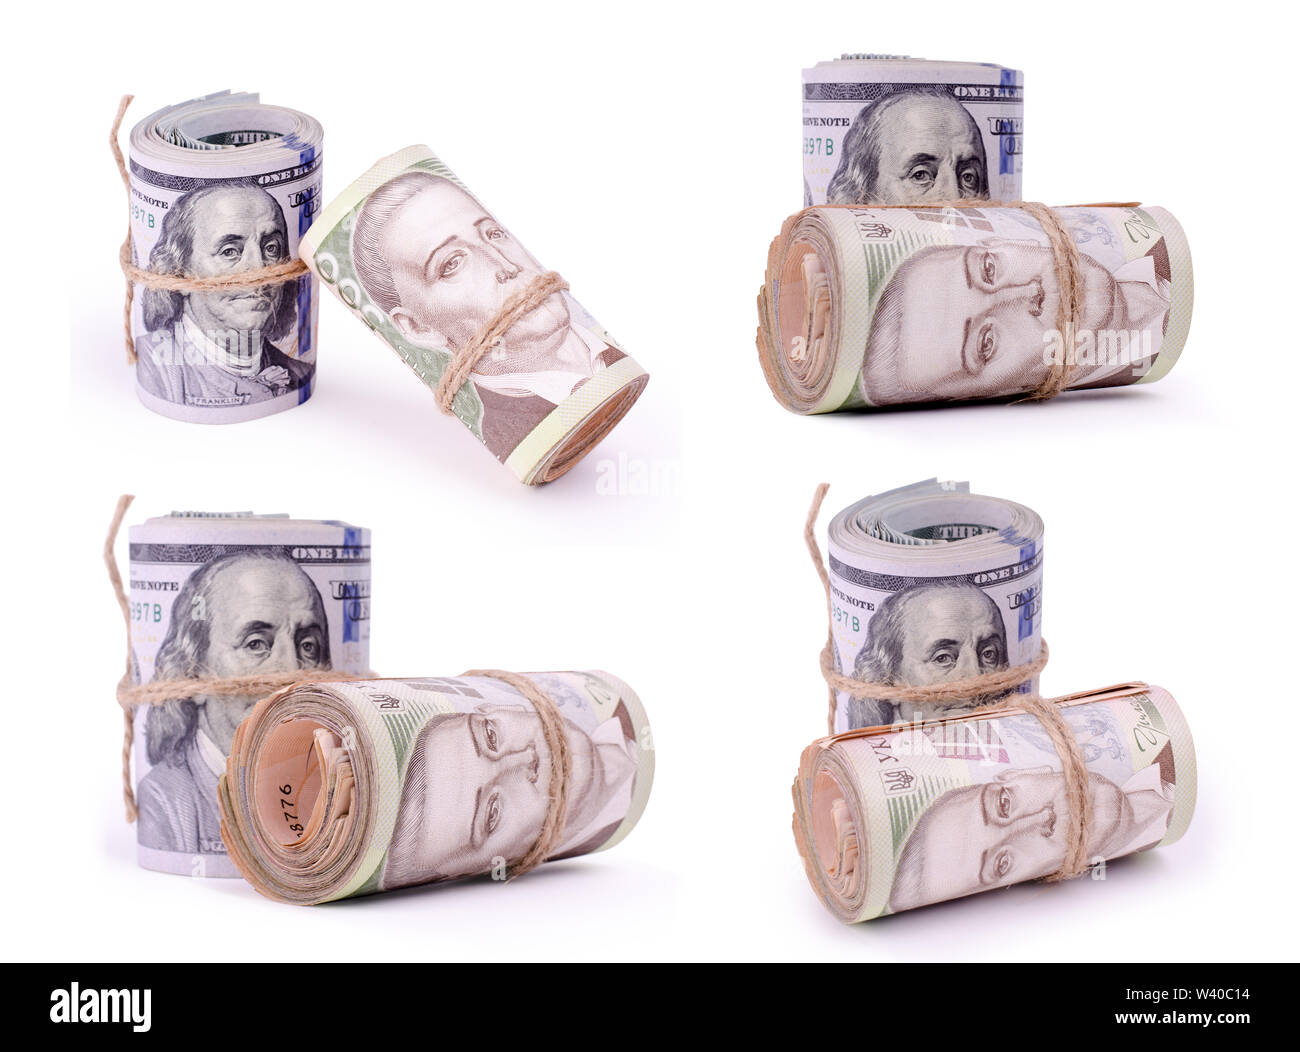 Set of photos of Tubes of United States Dollars and Ukrainian Hryvnia UAH Banknotes Isolated on a White. Financial business background. - Stock Image